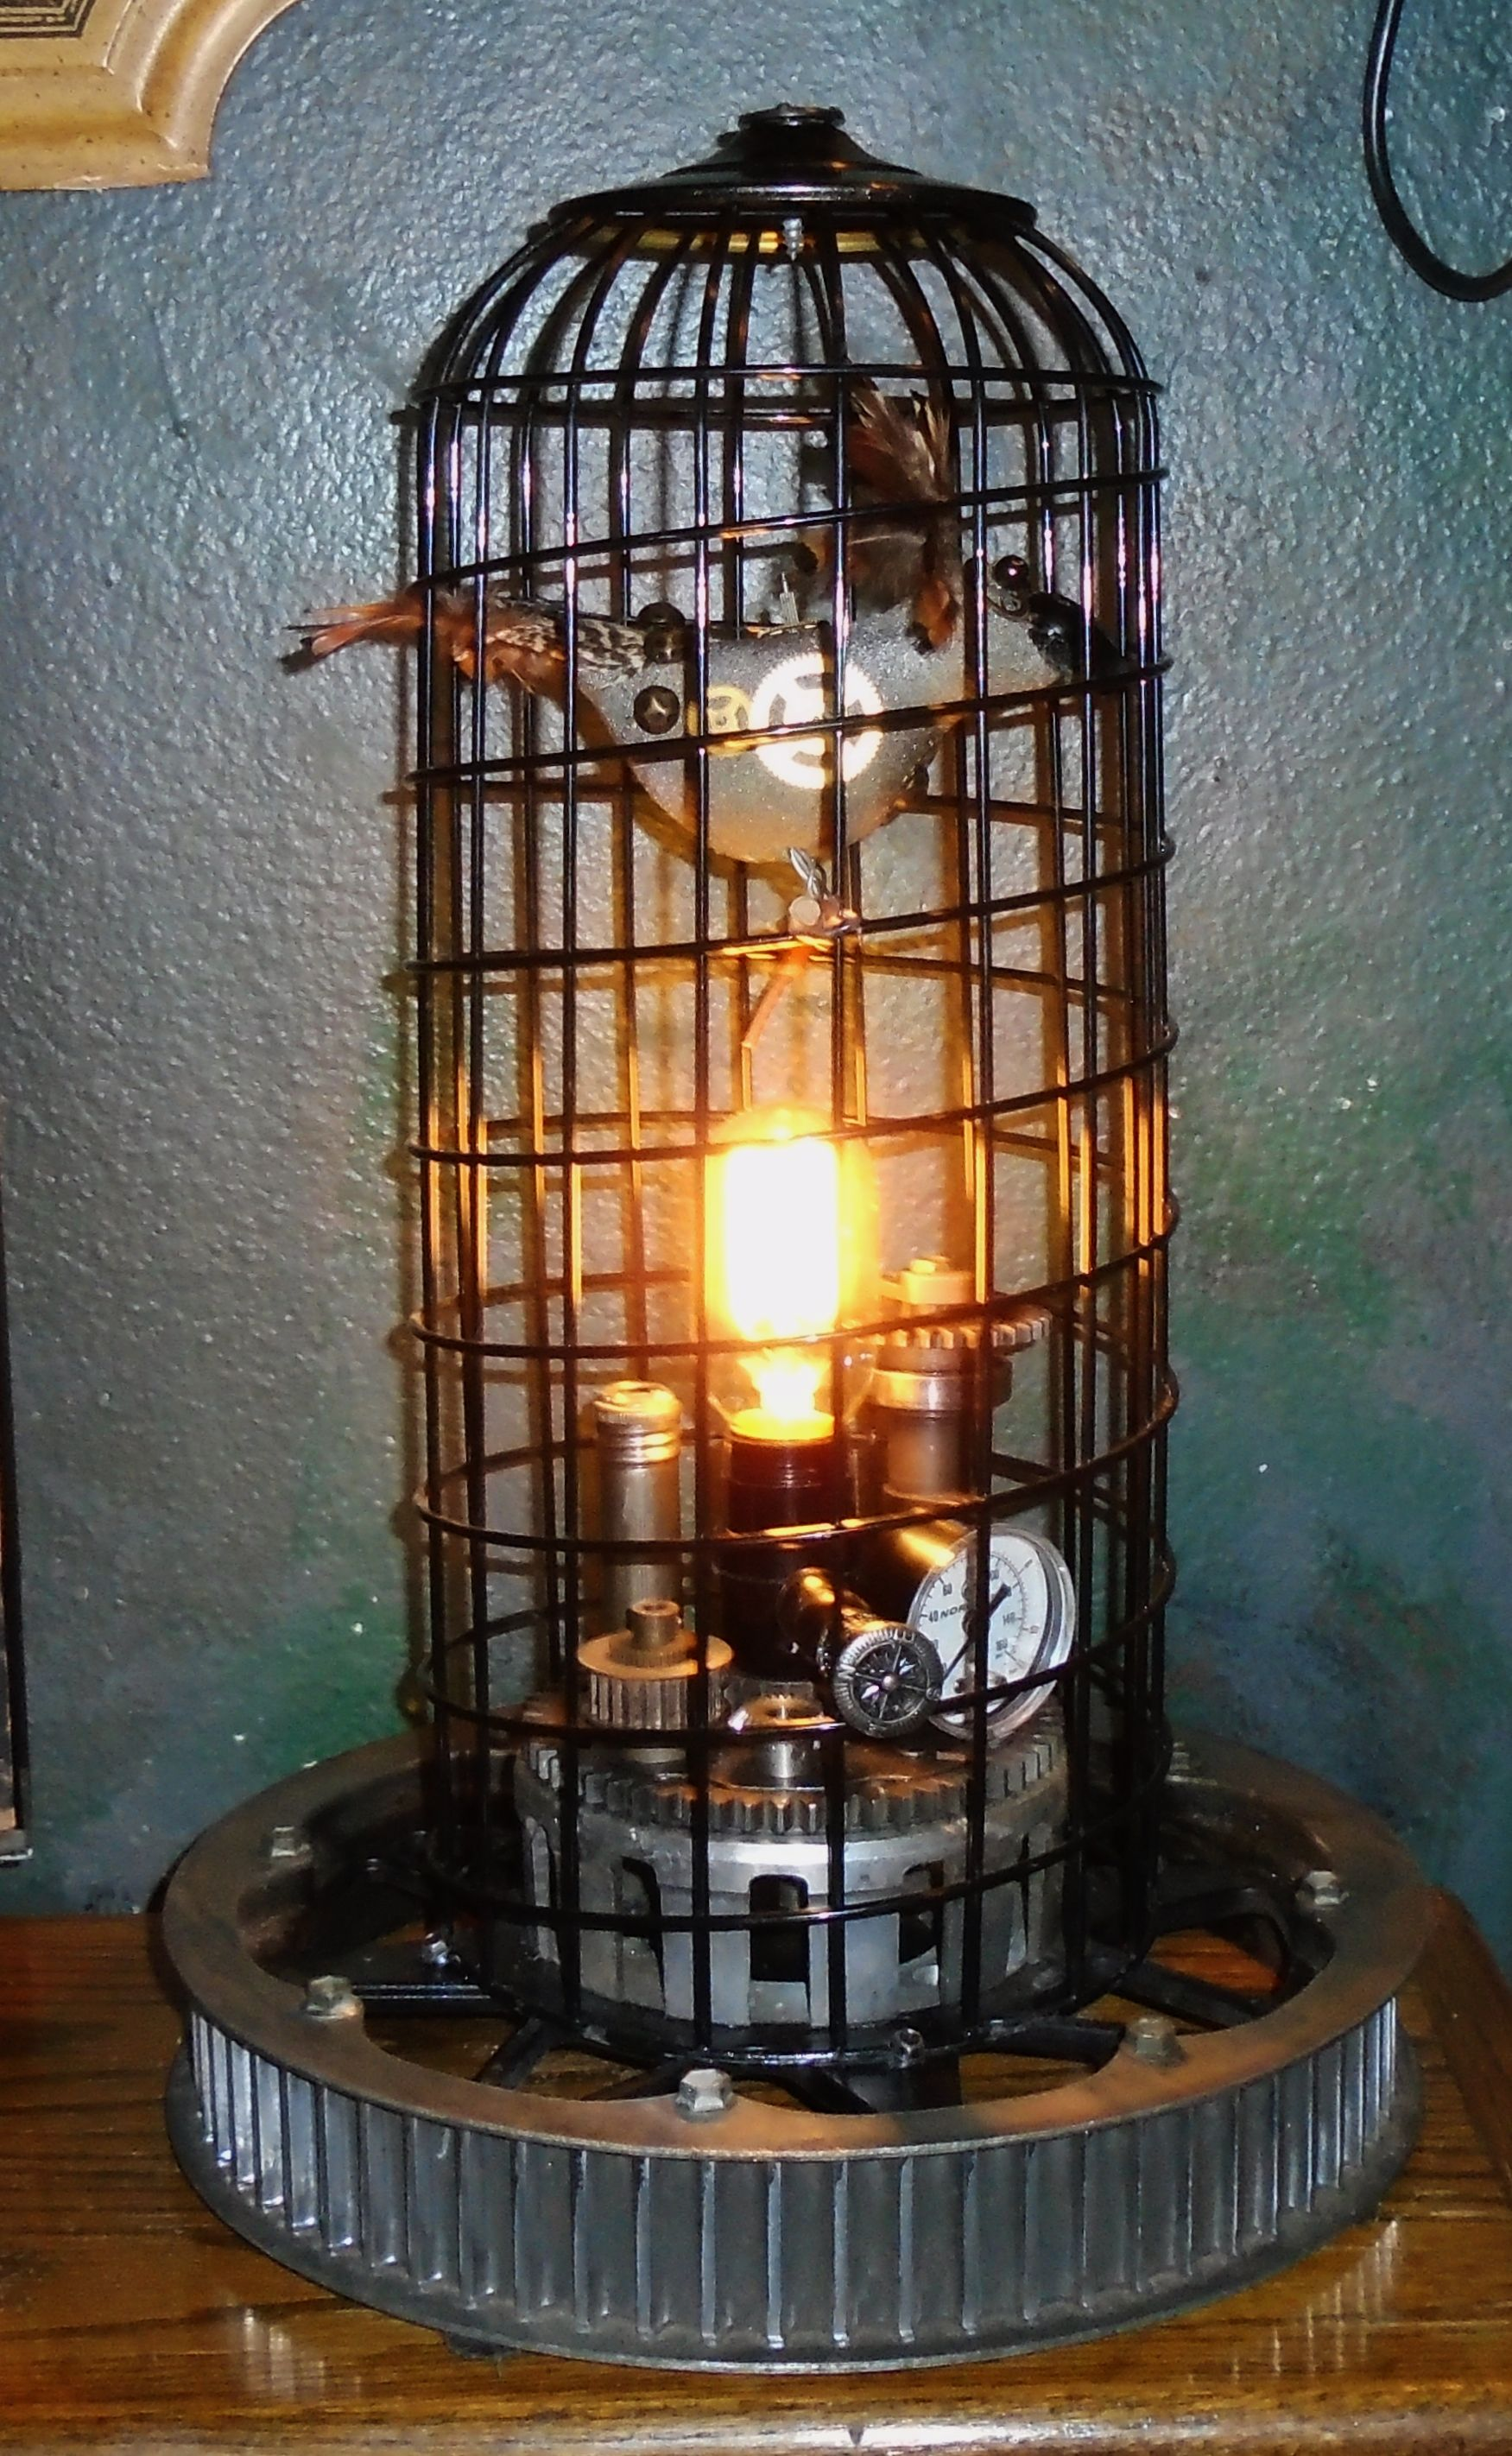 bronzetable oil light frame rubbed steel lamps com desk iron cage bird canada bronze rustic table decomust lamp birdcage